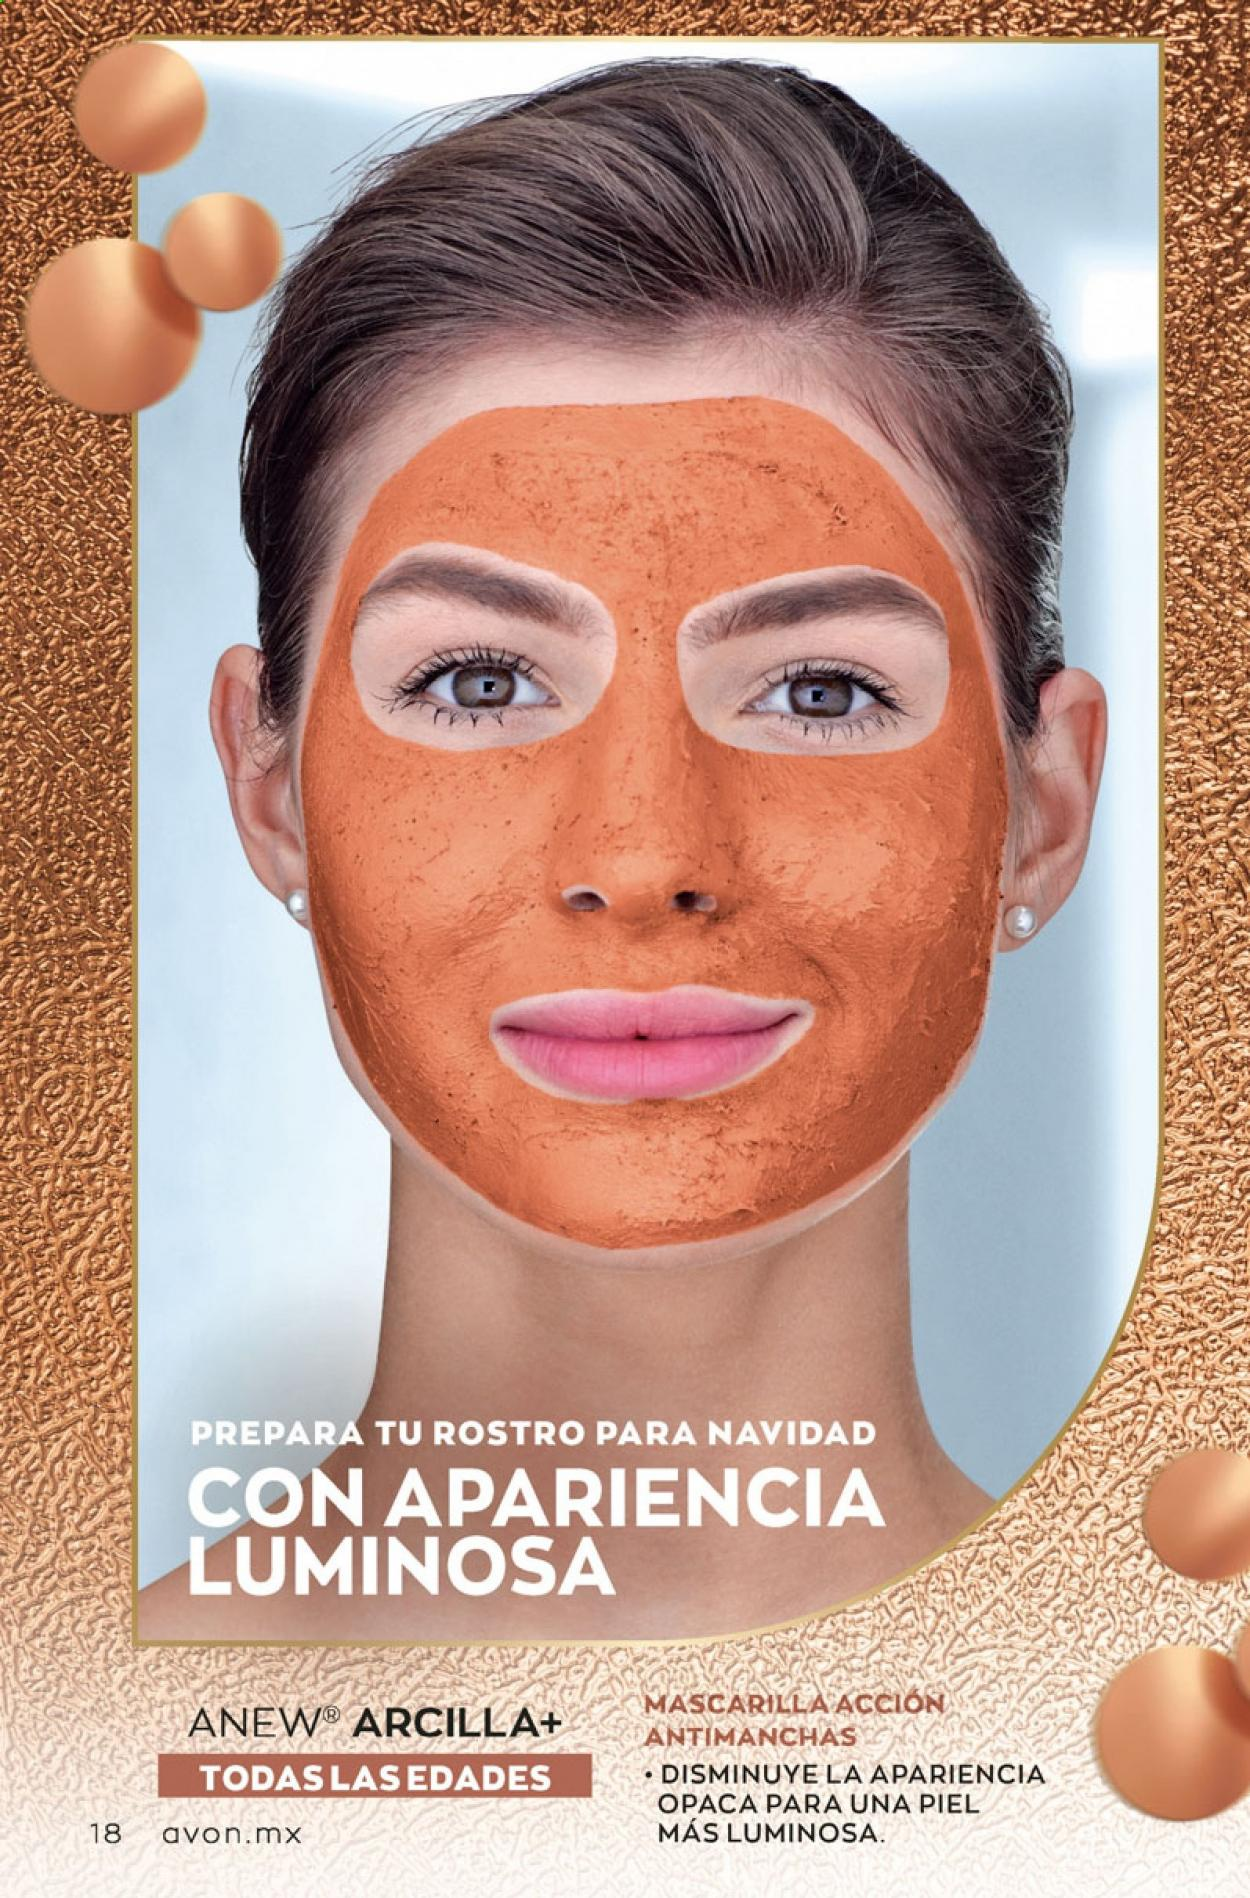 Folleto actual Avon - 5.10.2020 - 5.11.2020 - Ventas - anew, mascarilla. Página 18.